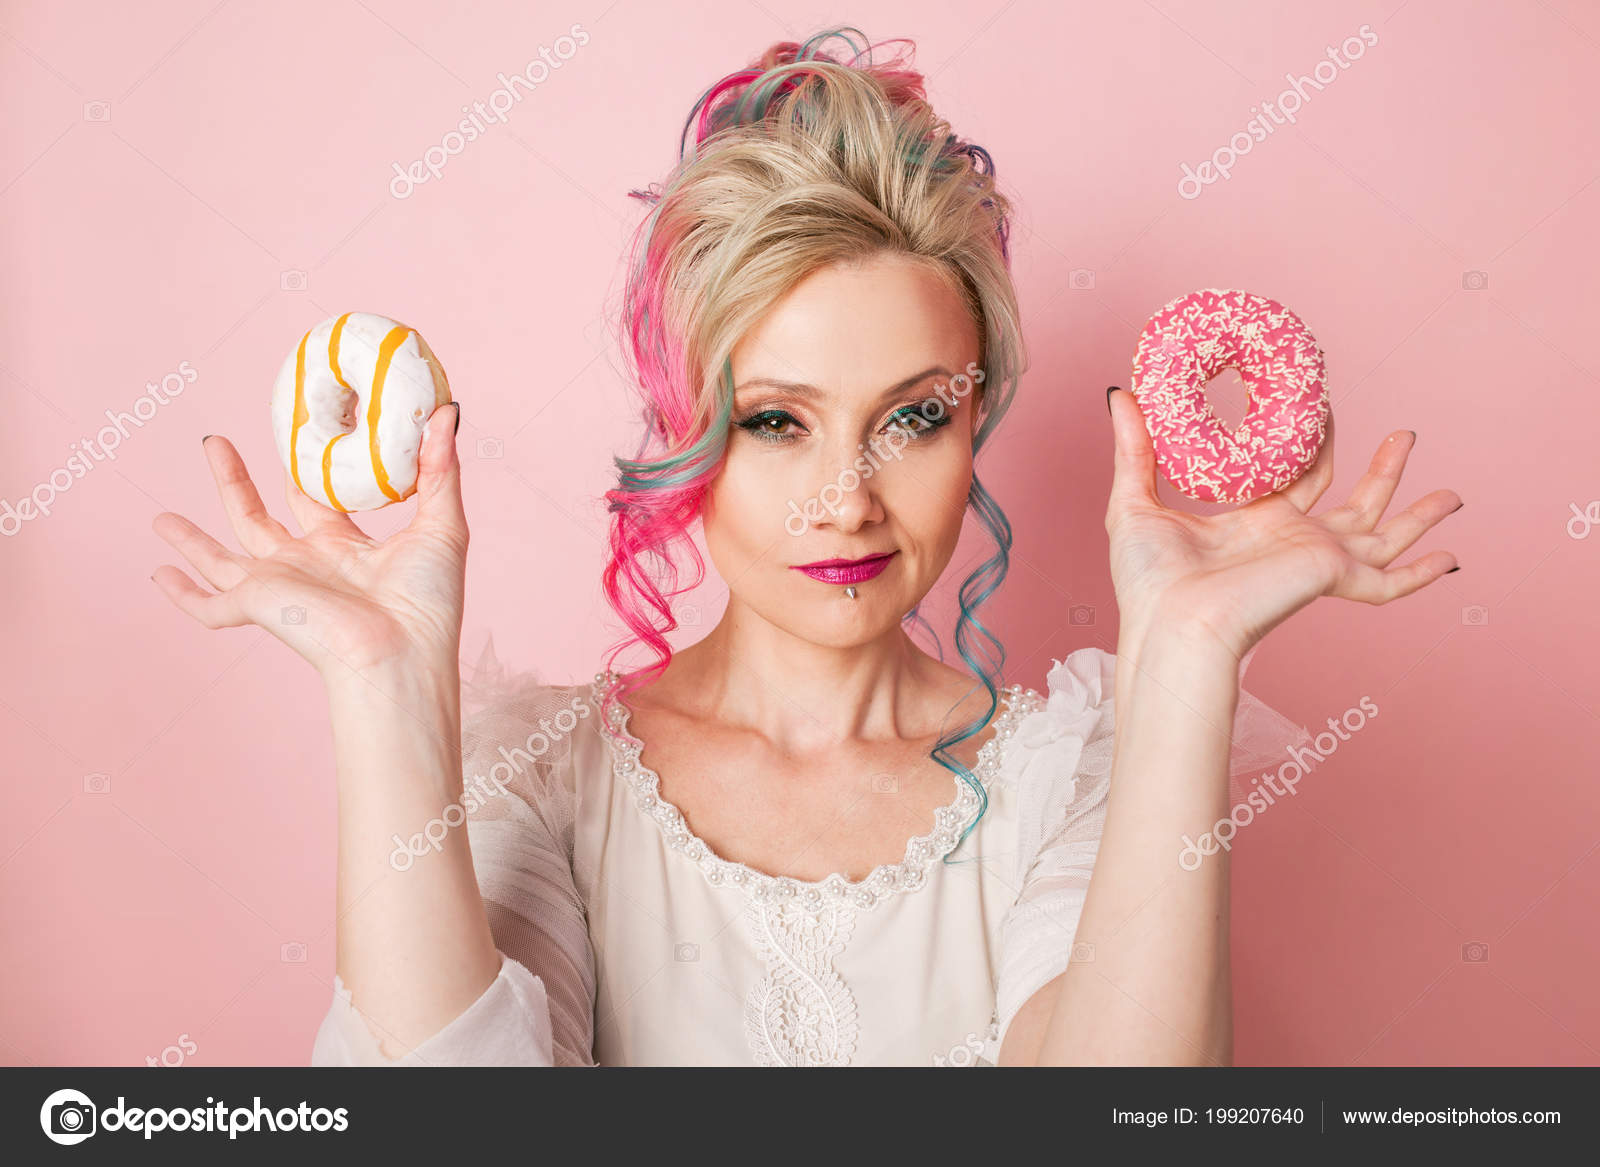 Stylish And Beautiful Woman With Colored Hair With Two Donuts